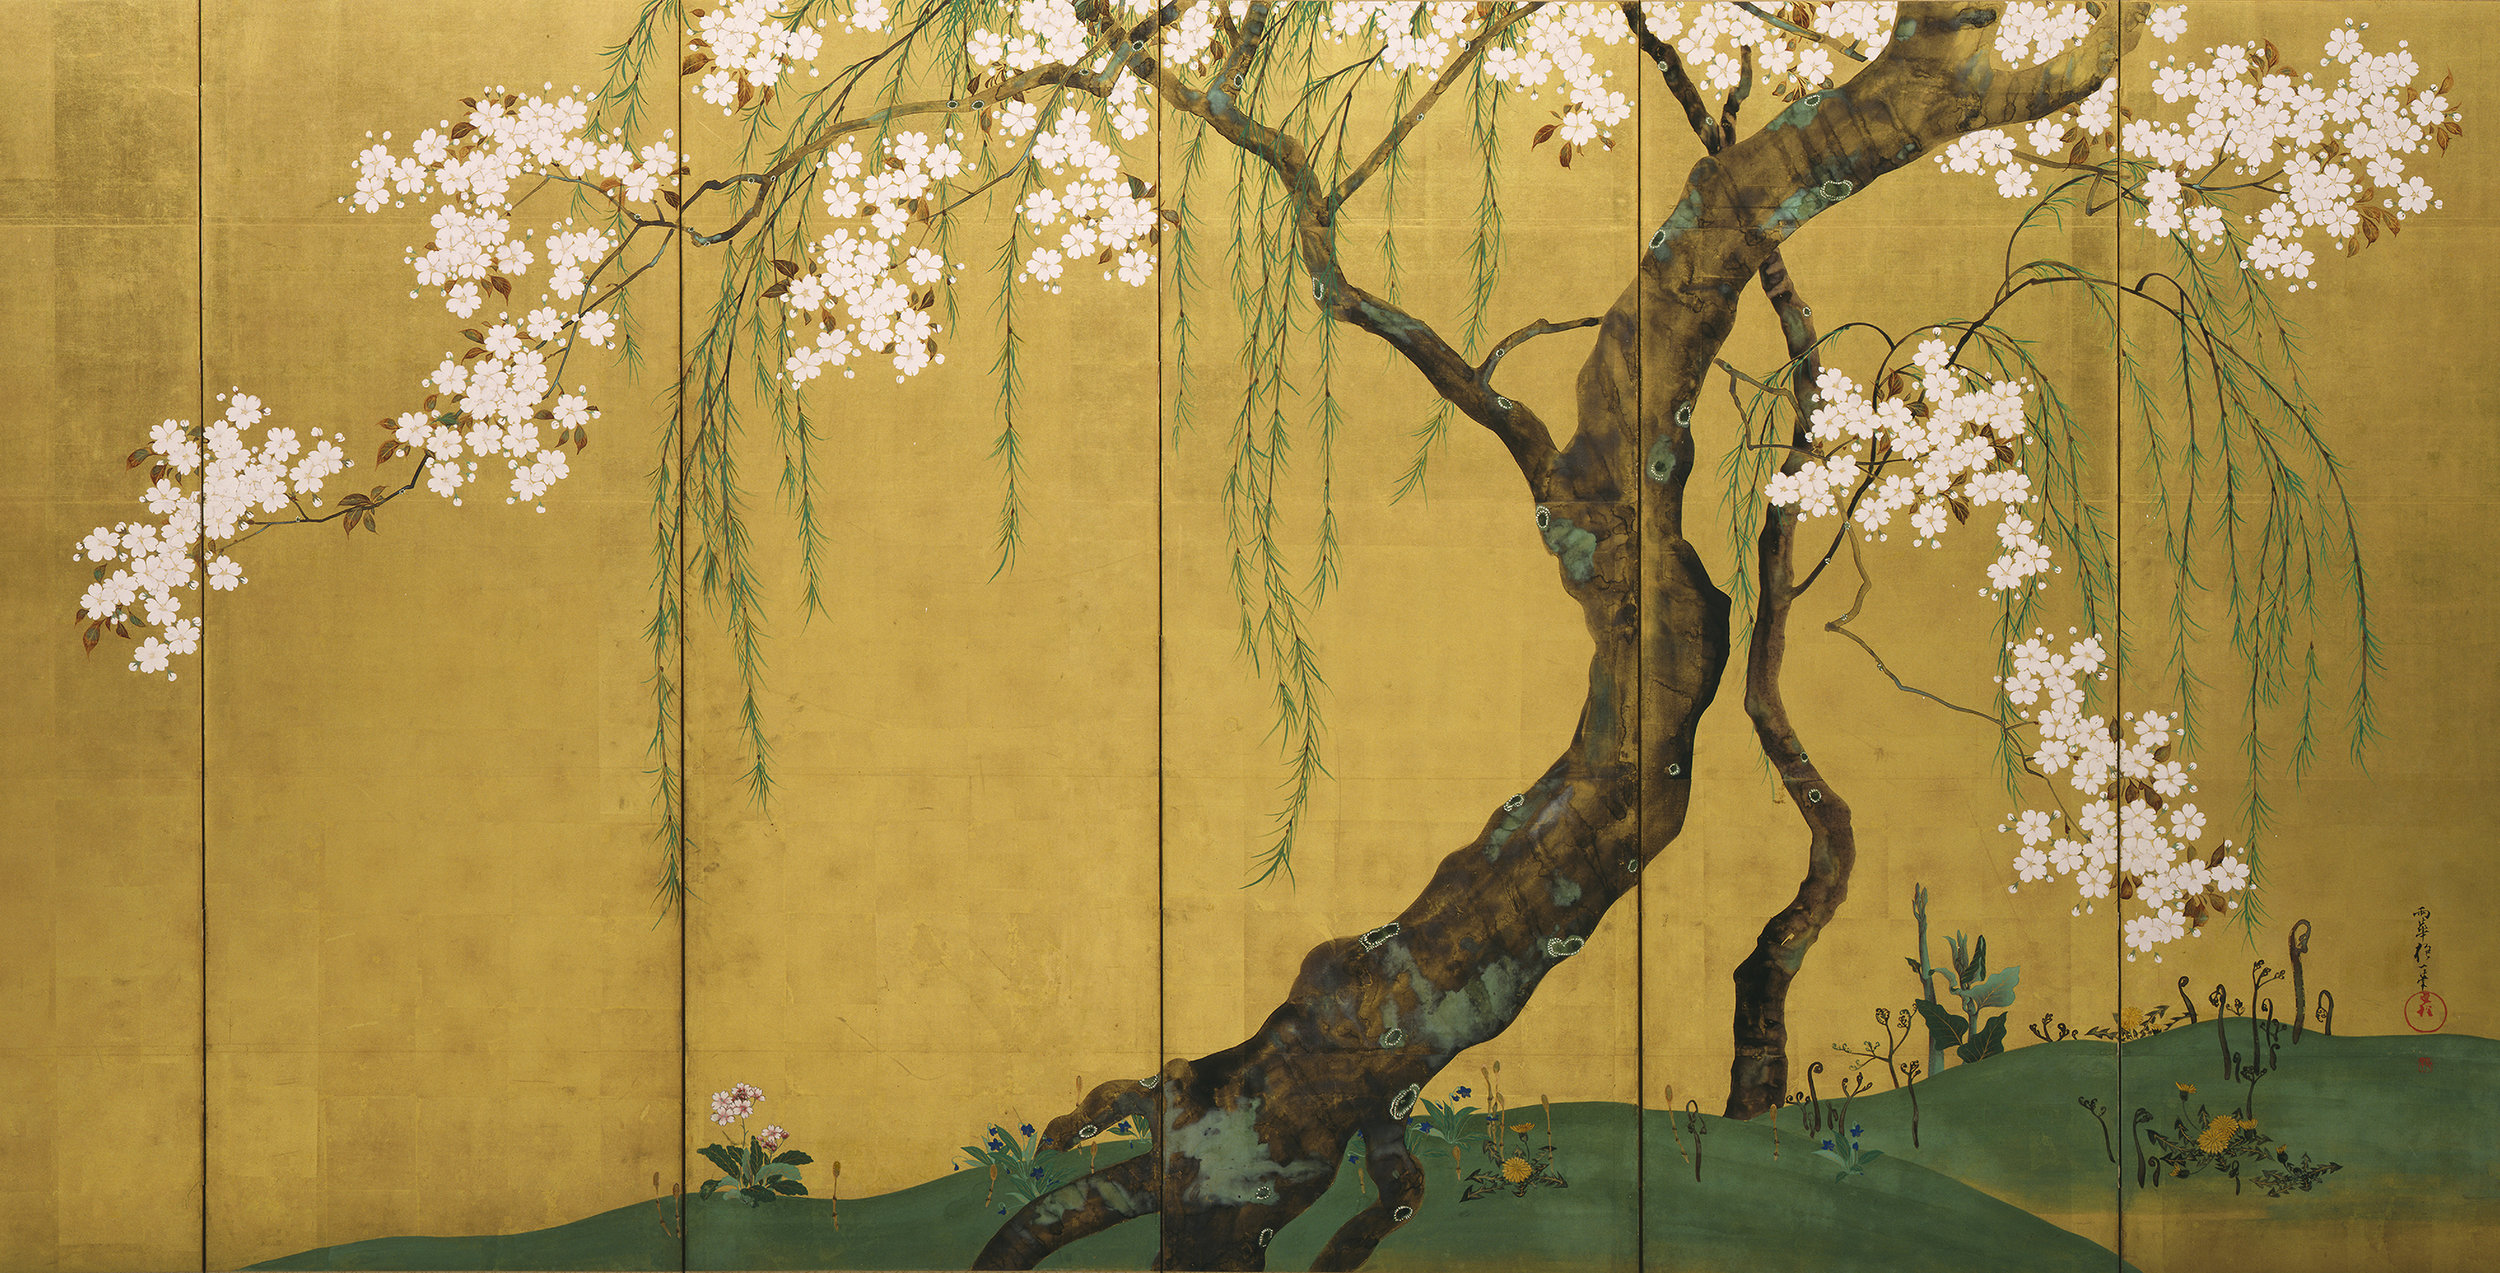 Hoitsu.Cat_.16a-Maples-and-Cherry-Trees-Lent-by-the-John-and-Celeste-Fleming-Family-courtesy-of-the-Denver-Art-Museum.jpg